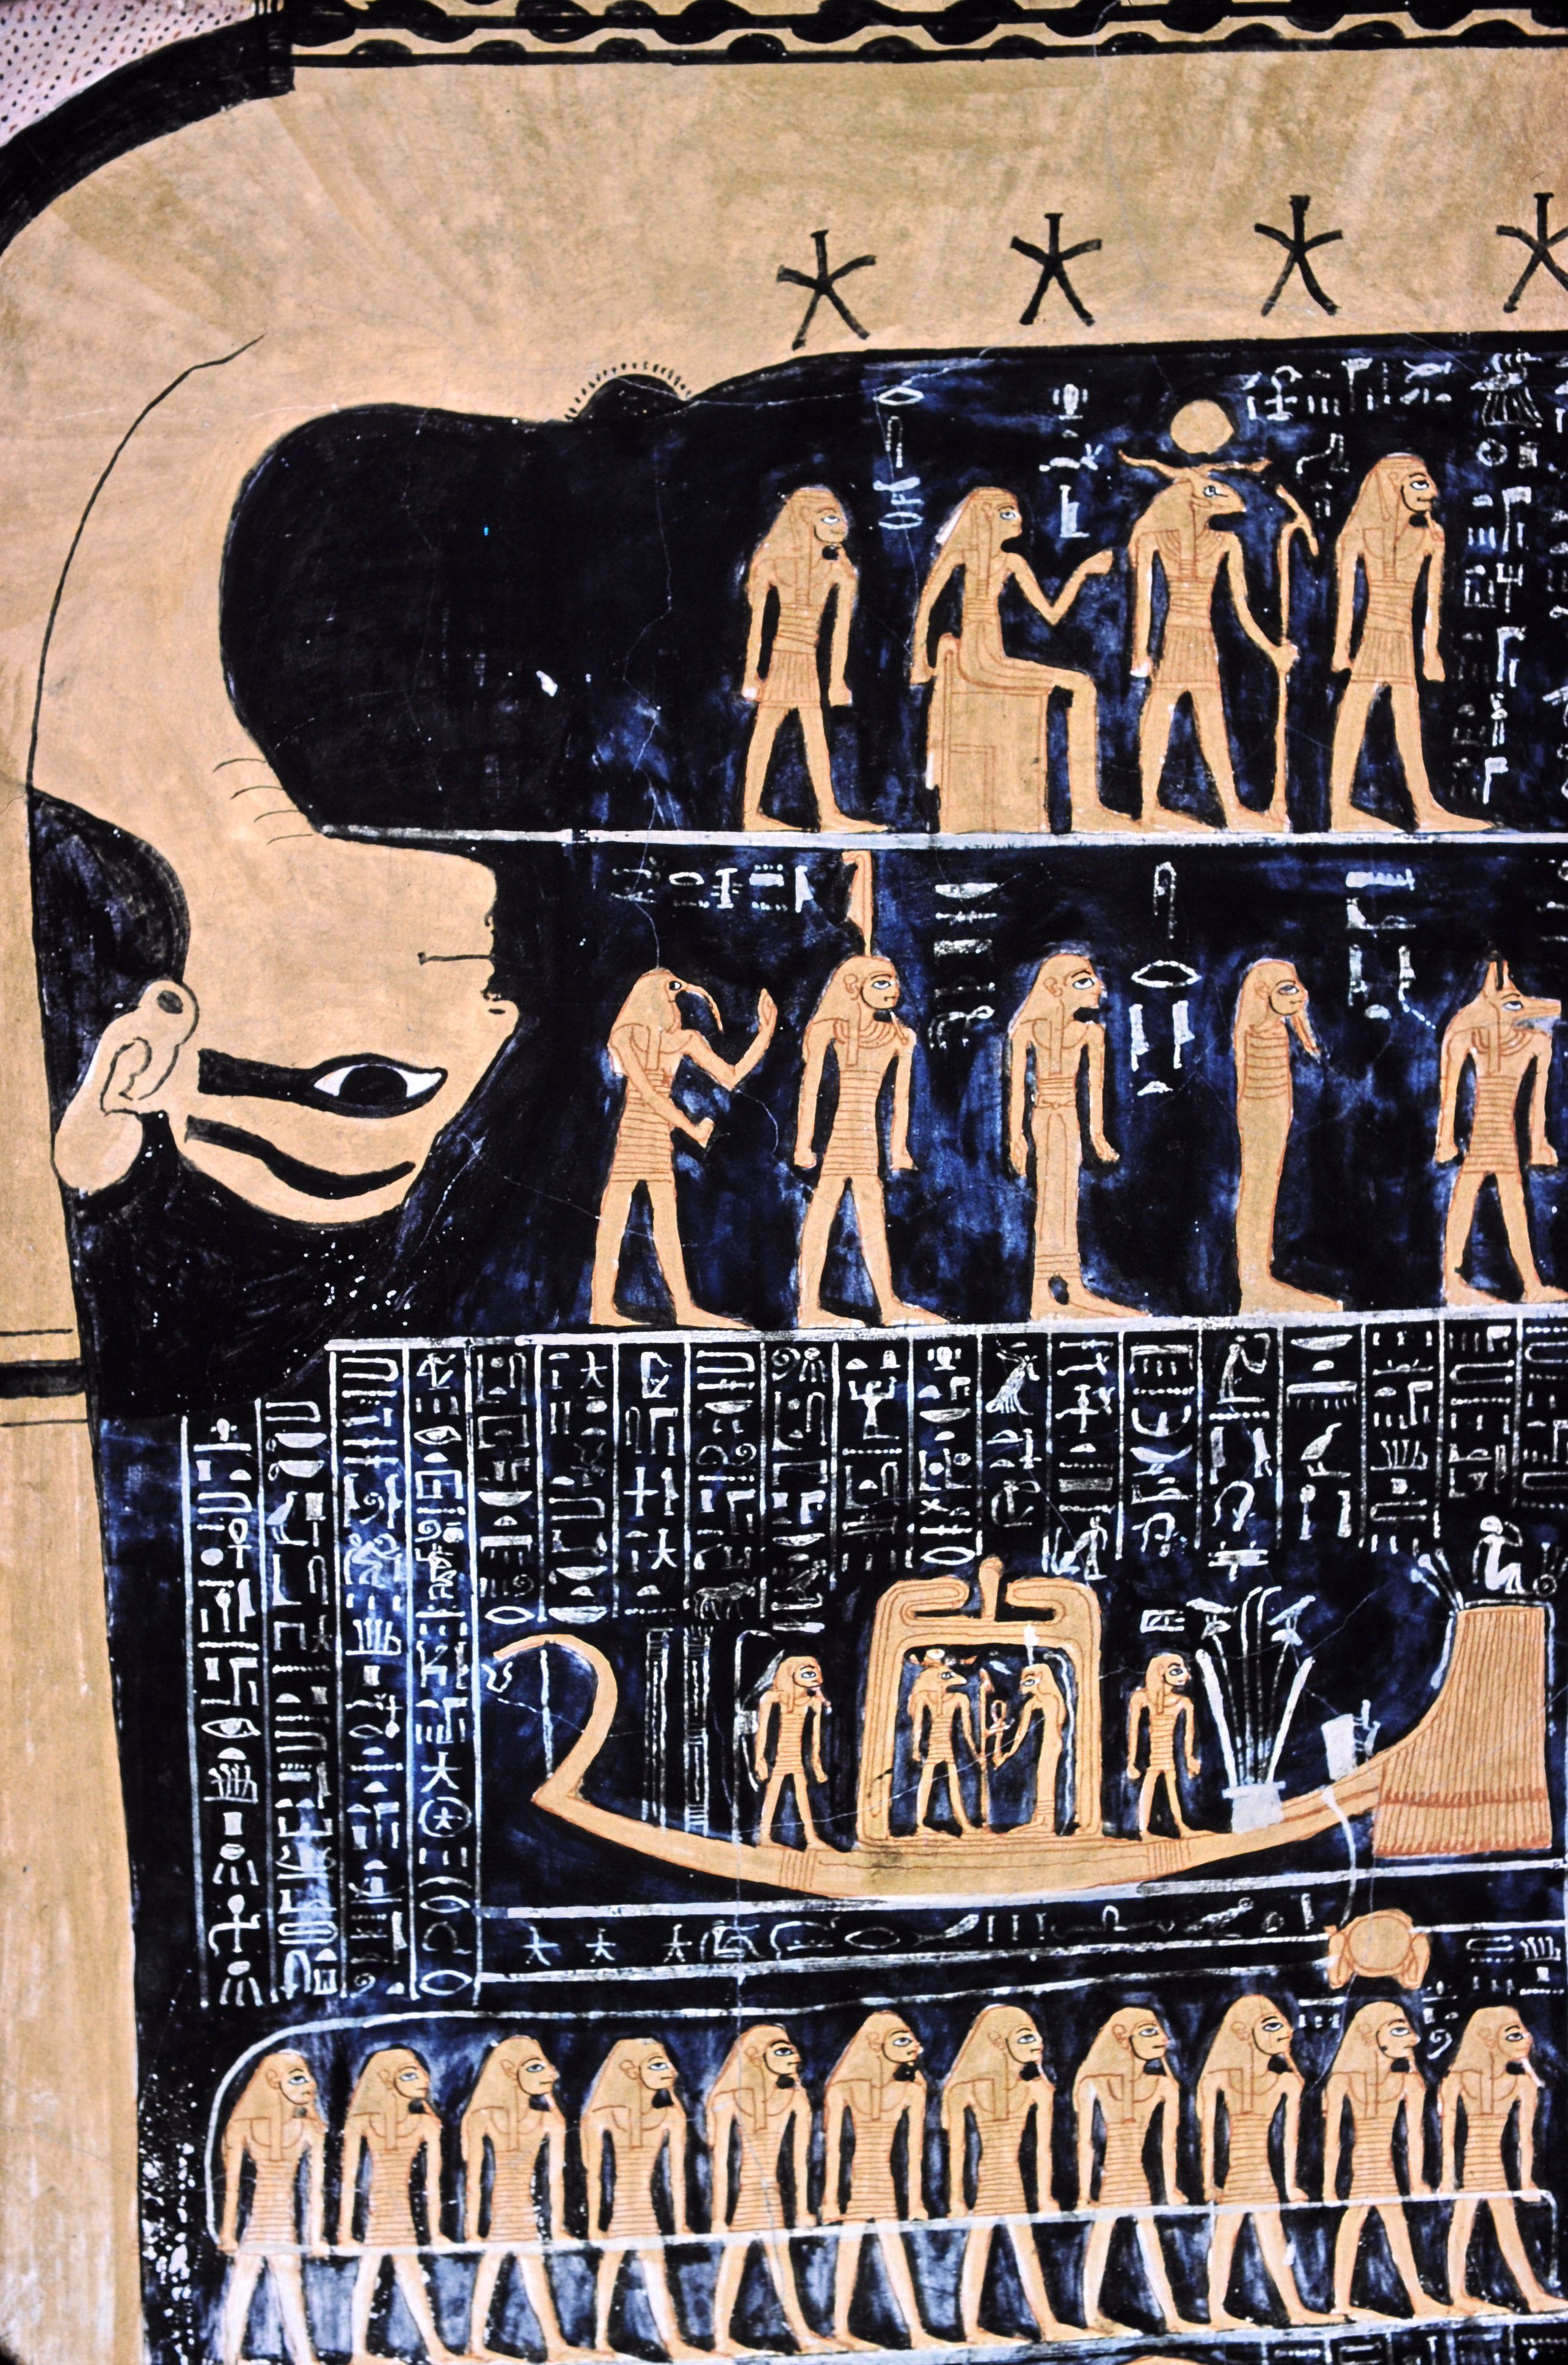 Nut Egyptian Goddess Of The Sky With The Star Chart In The Tomb Of